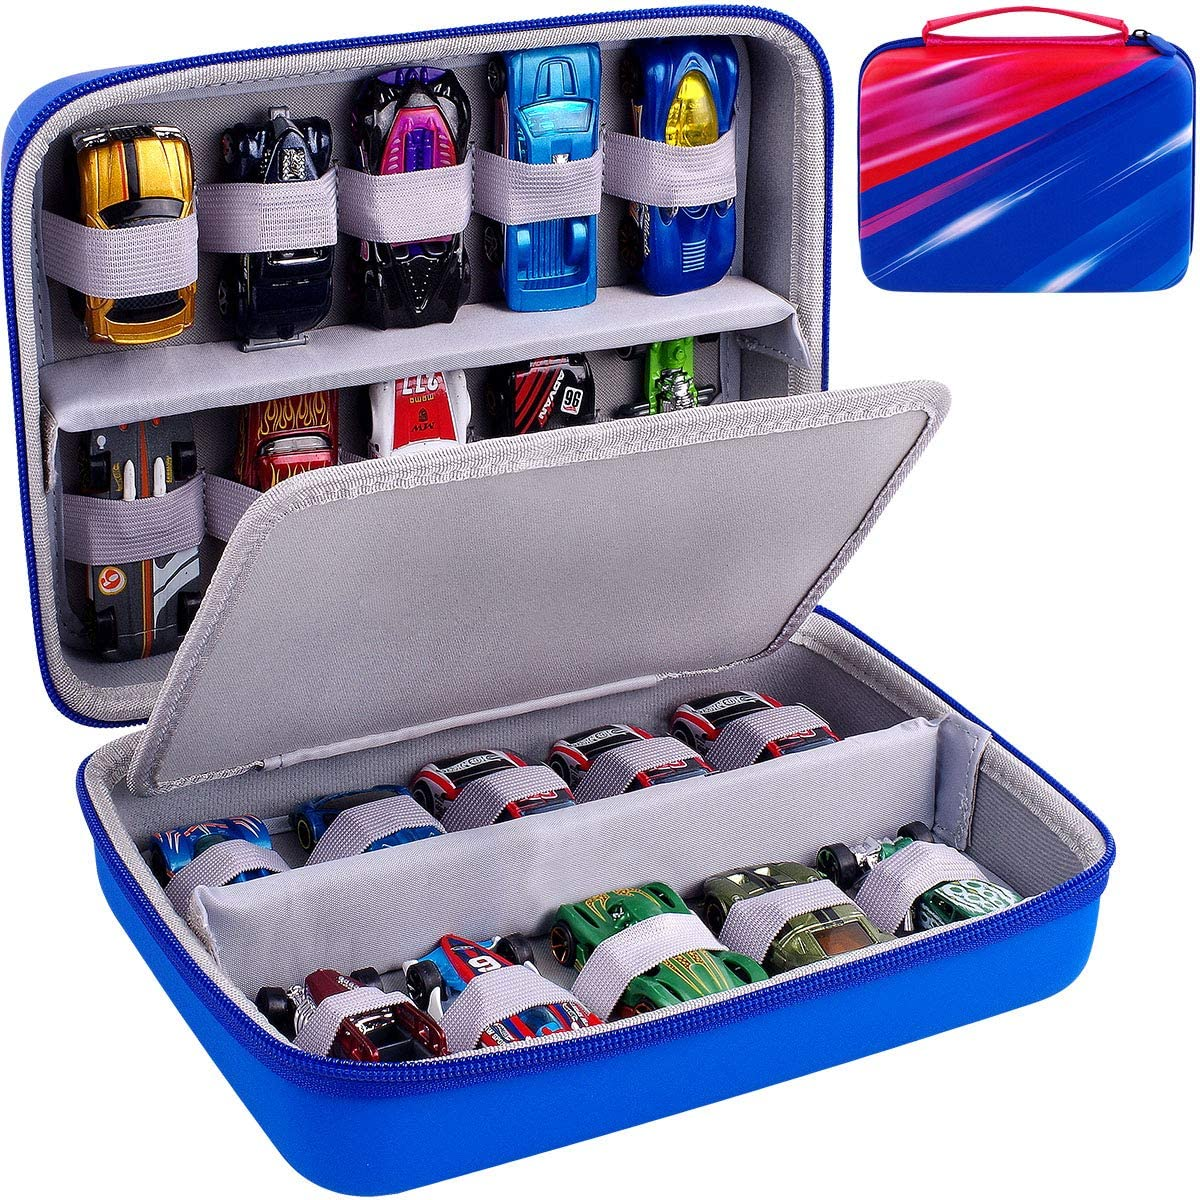 Hot Wheels Style Car Carrying Case Diecast Cars Organizer 2 Sided Storage Box